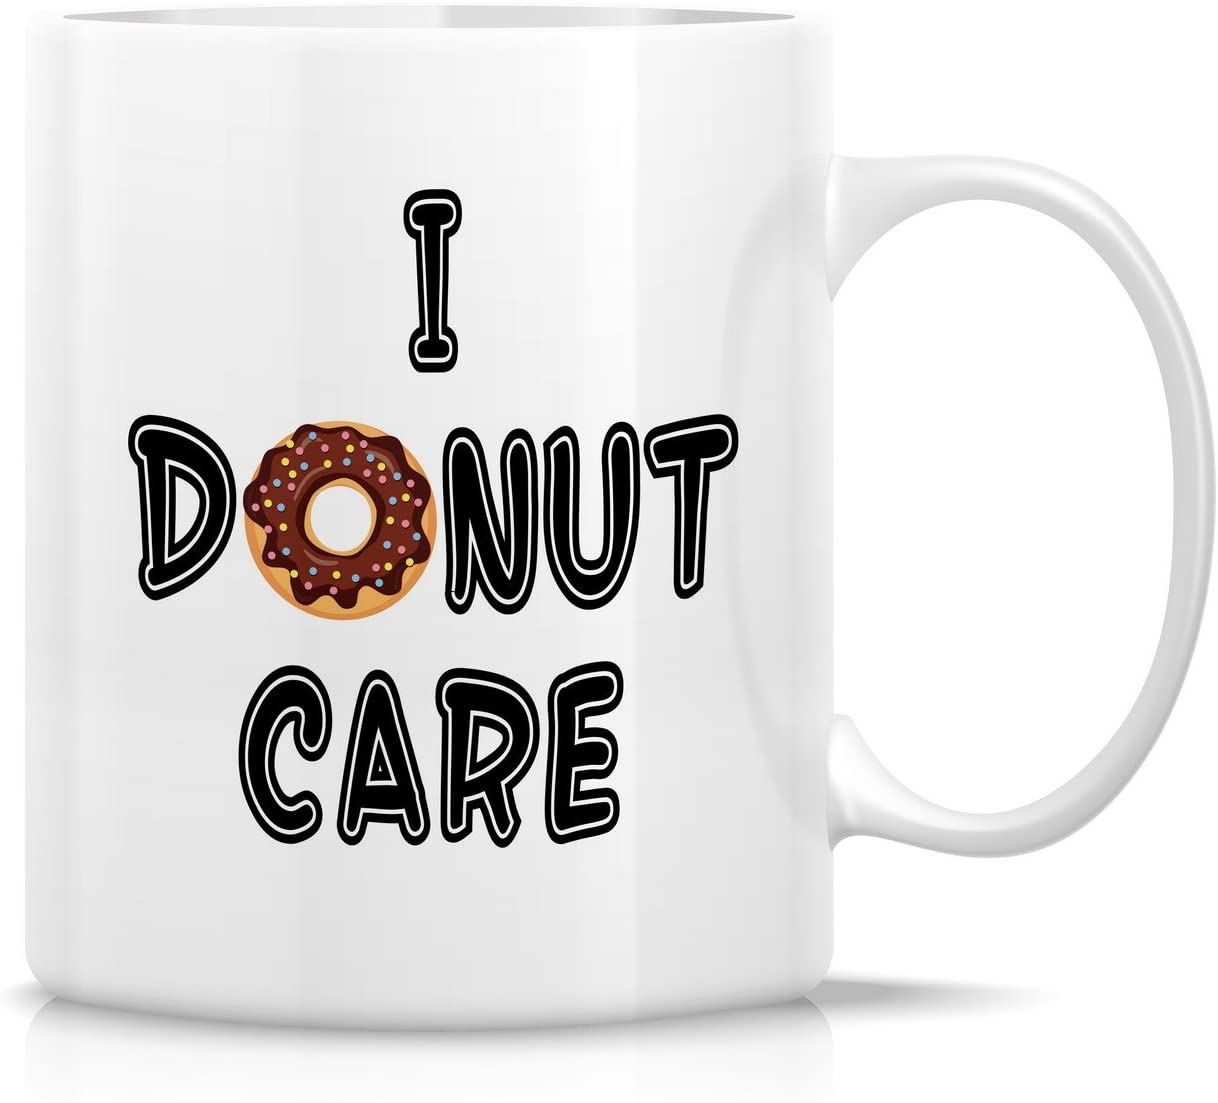 Retreez Funny Mug - I Don't Donut Care 11 Oz Ceramic Coffee Mugs - Funny, Sarcasm, Sarcastic, Motivational, Inspirational birthday gifts for friends, coworkers, siblings, dad or mom.